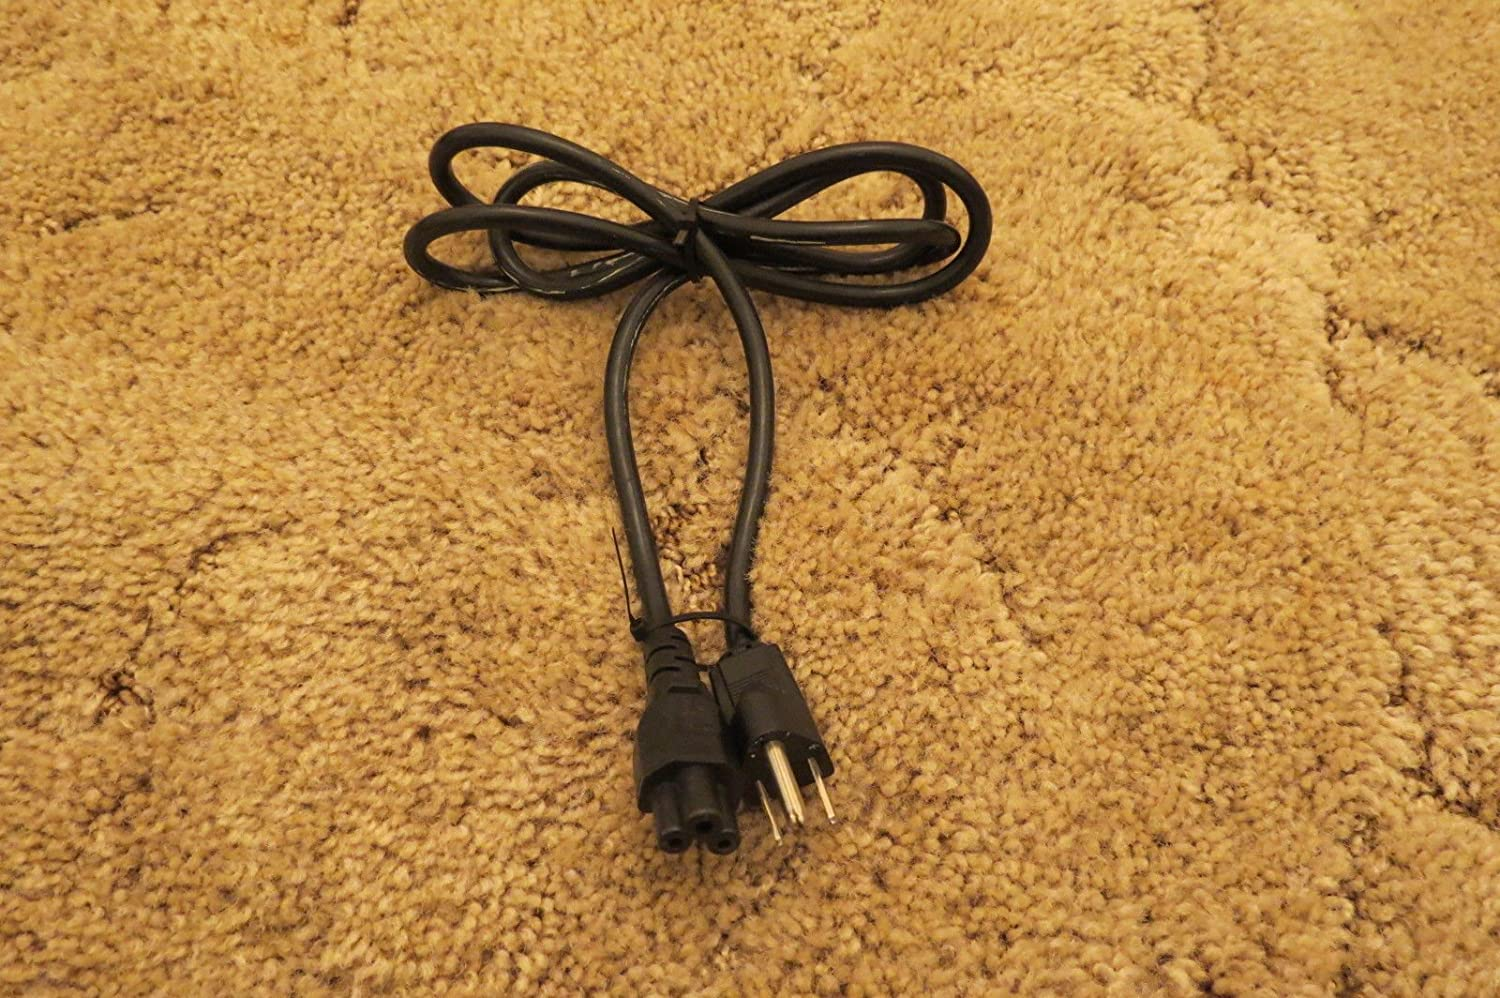 Three-Round-Pin Cord 3-Prong AC Plug Cable for Laptop Power Supply Wall Adapter